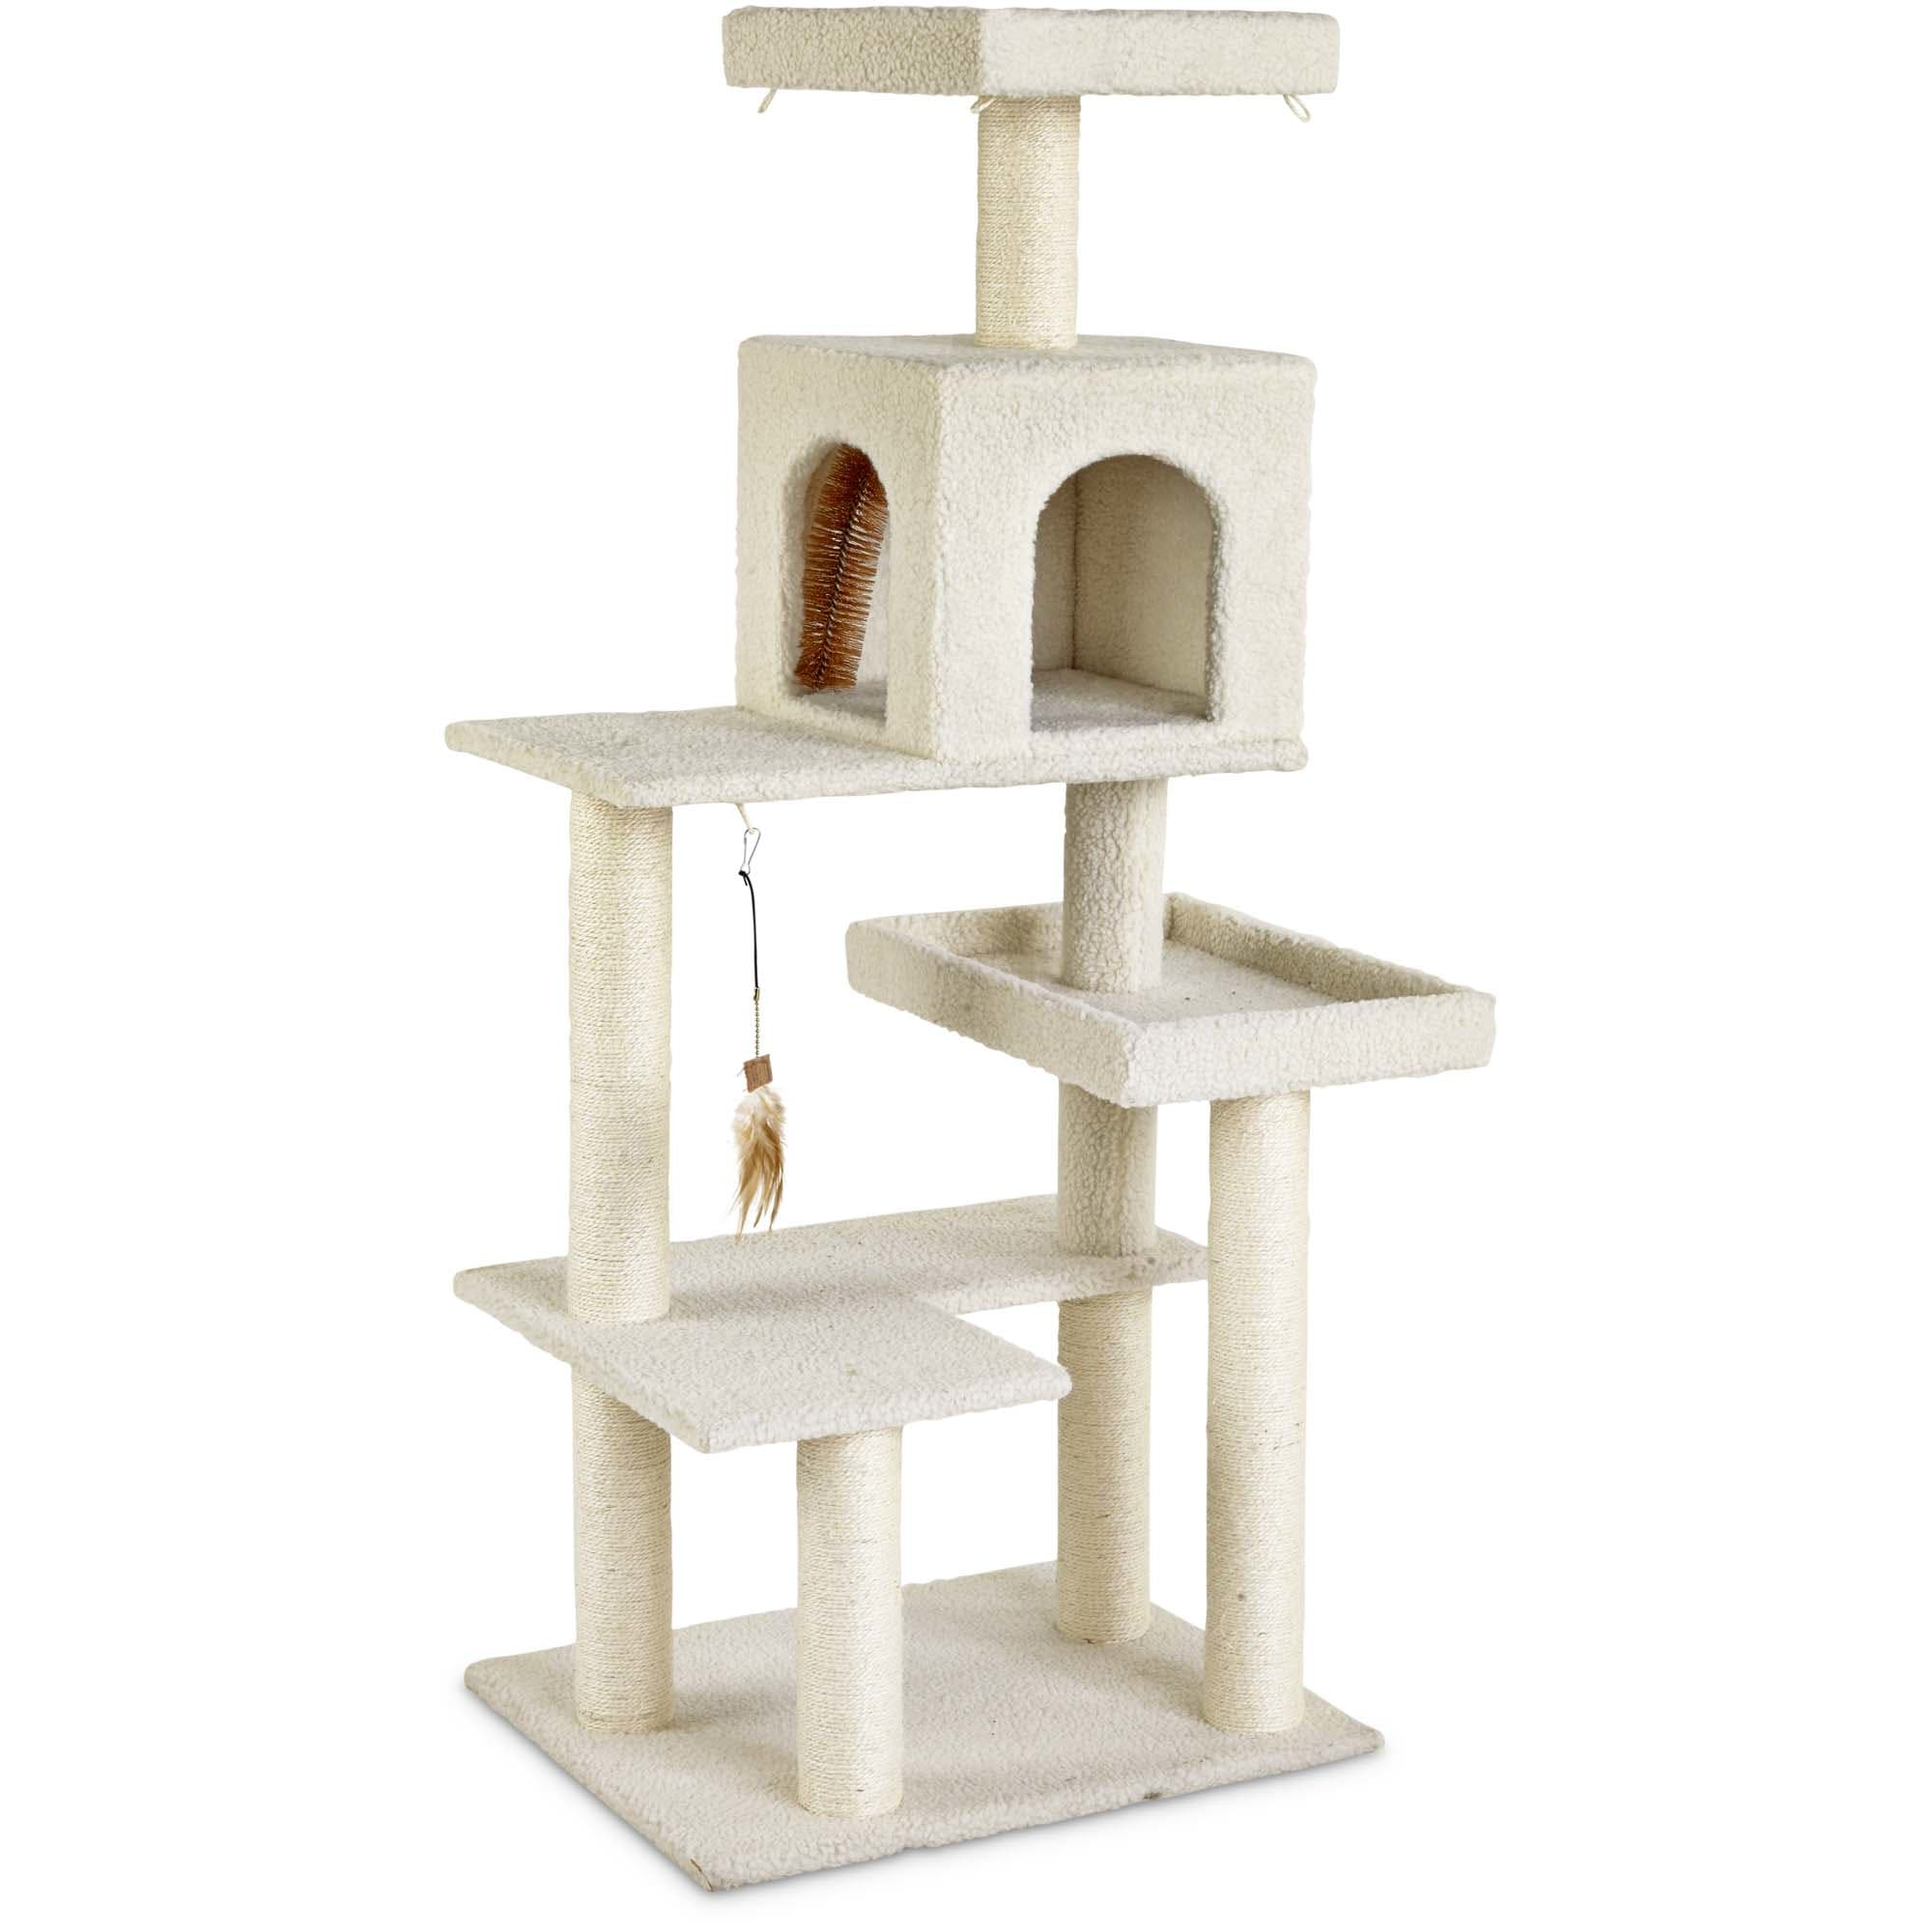 petco cat shelves